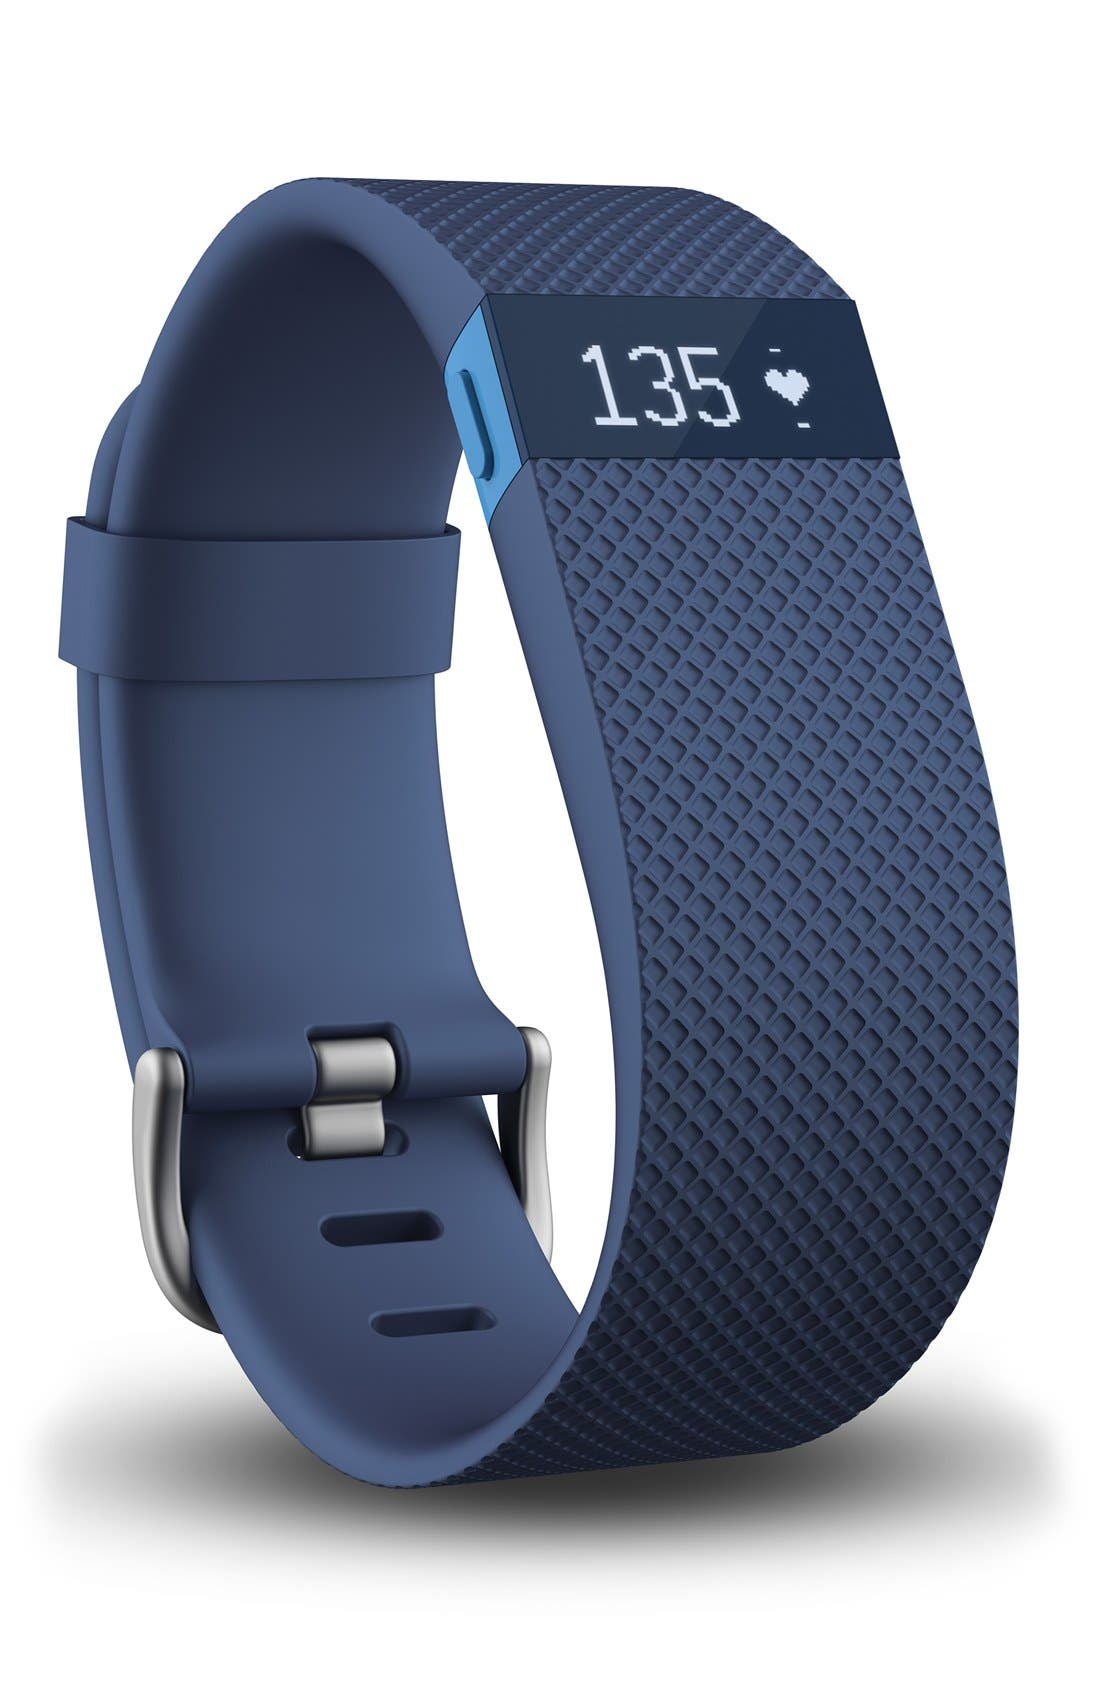 Alternate Image 1 Selected - Fitbit Charge HR Wireless Activity & Heart Rate Tracker